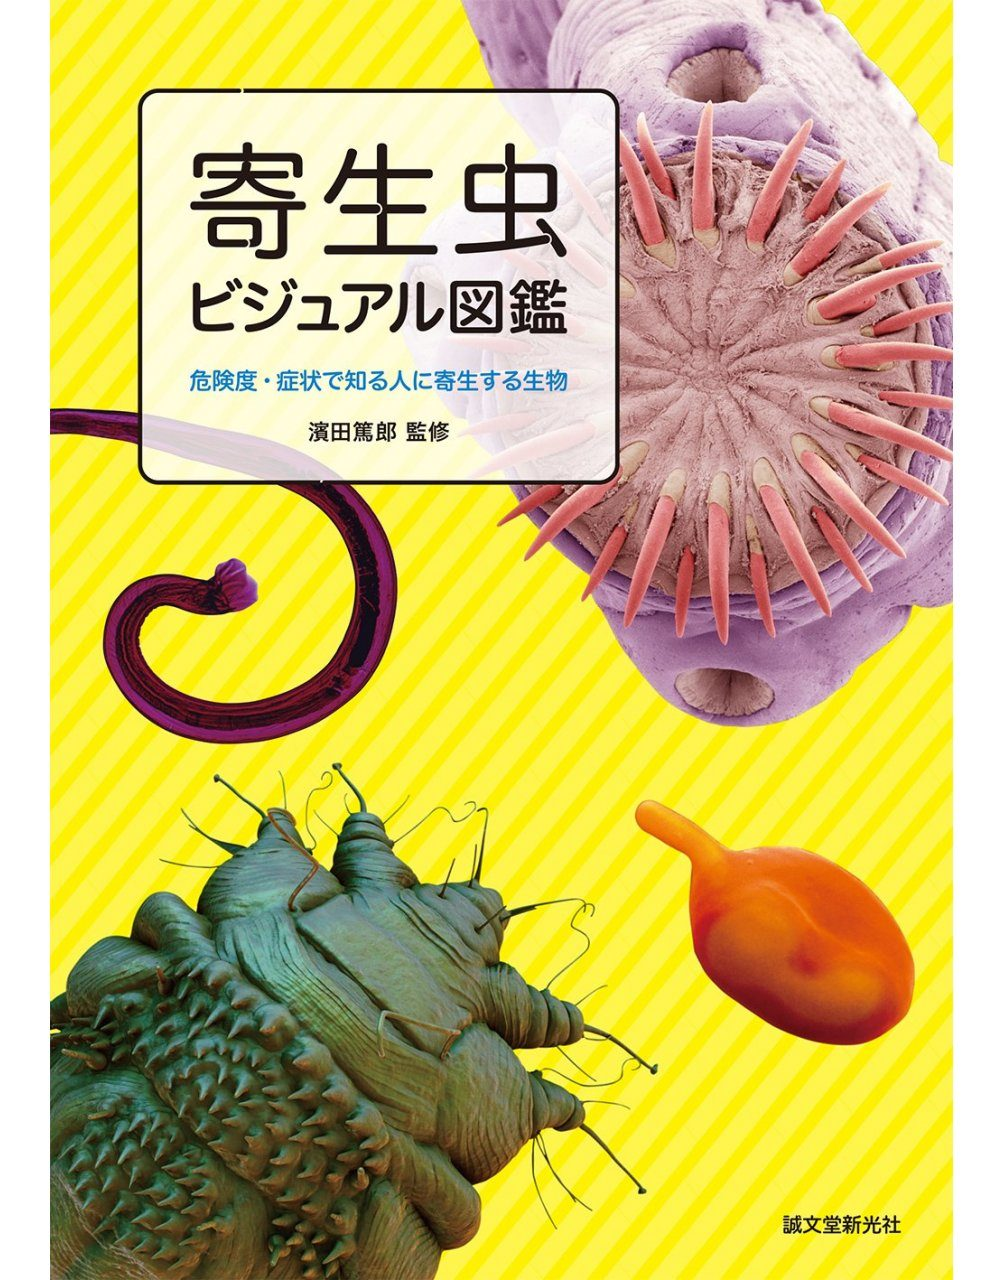 Kiseichū Bijuaru Zukan: Kiken-do Shōjō de Shiru Hito ni Kisei Suru Seibutsu [Visual Parasite Book: Organisms Parasitizing Humans Including Risks and Symptoms]